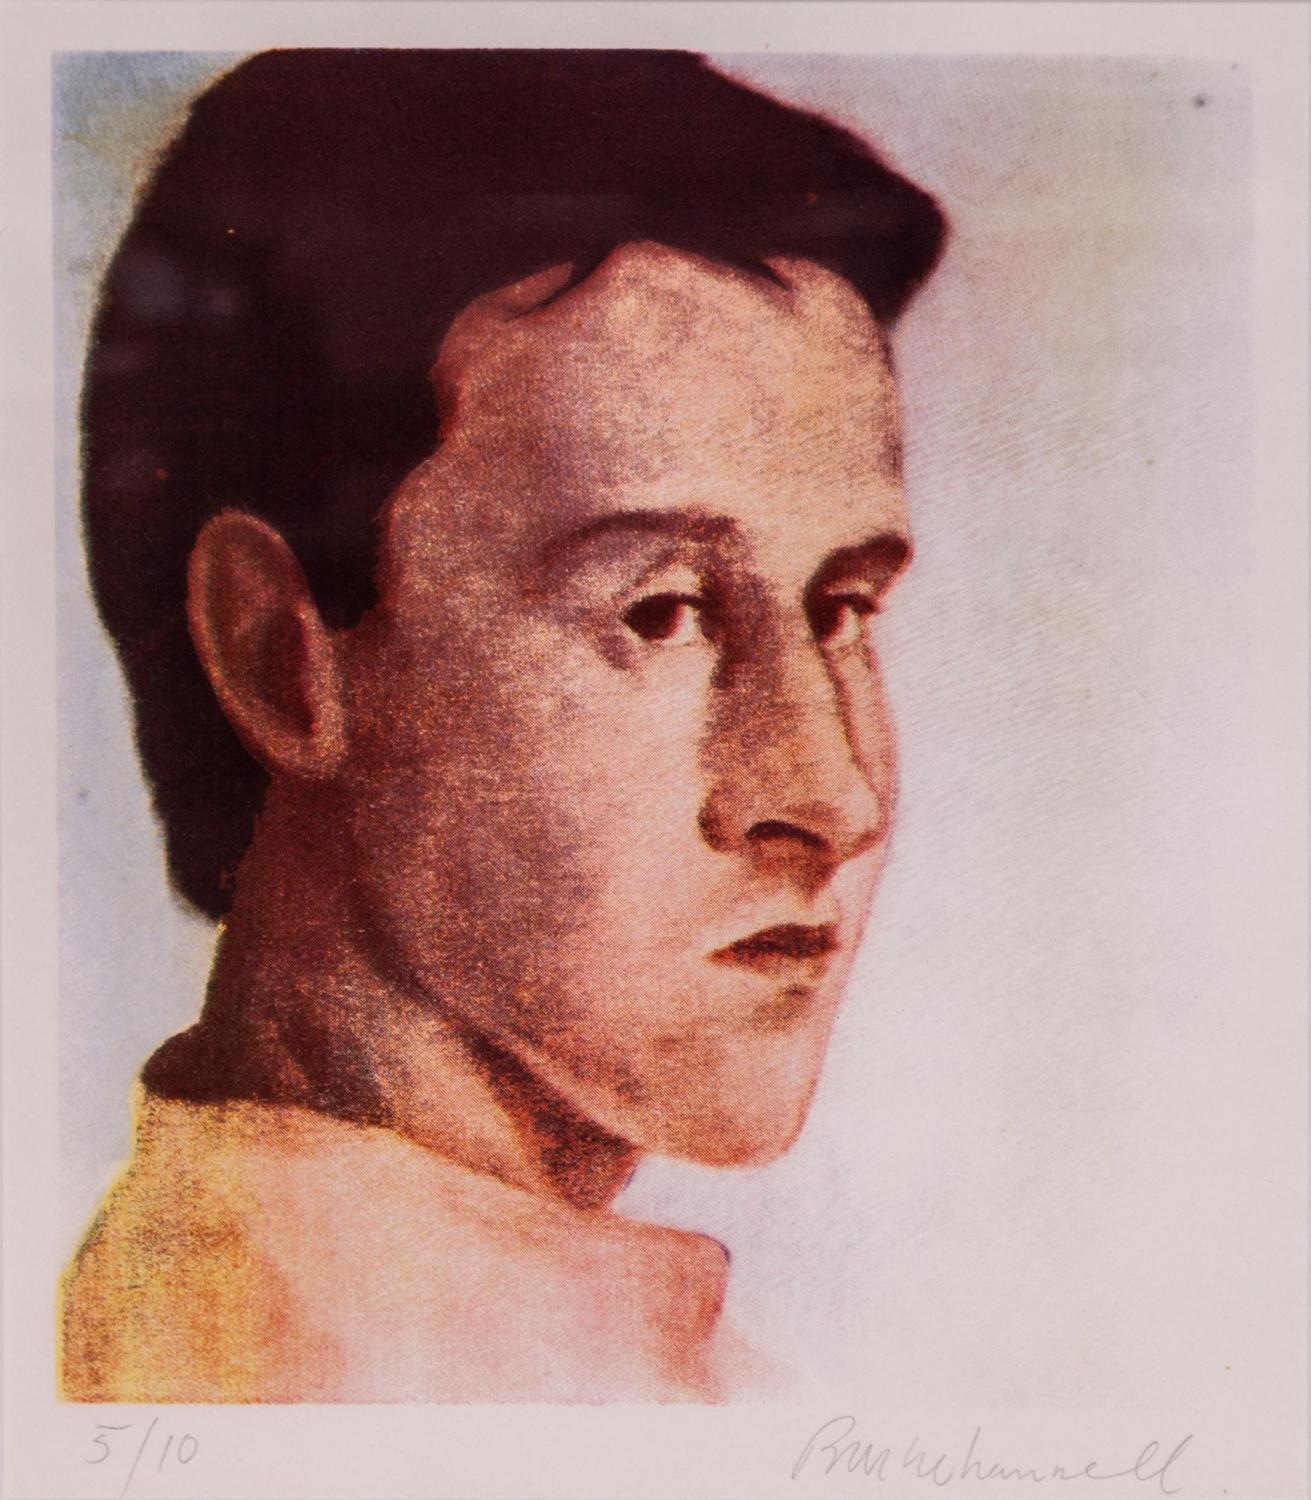 6c59fe7bc6a41 Richard McWhannell - Self-Portrait - Price Estimate: $300 - $500